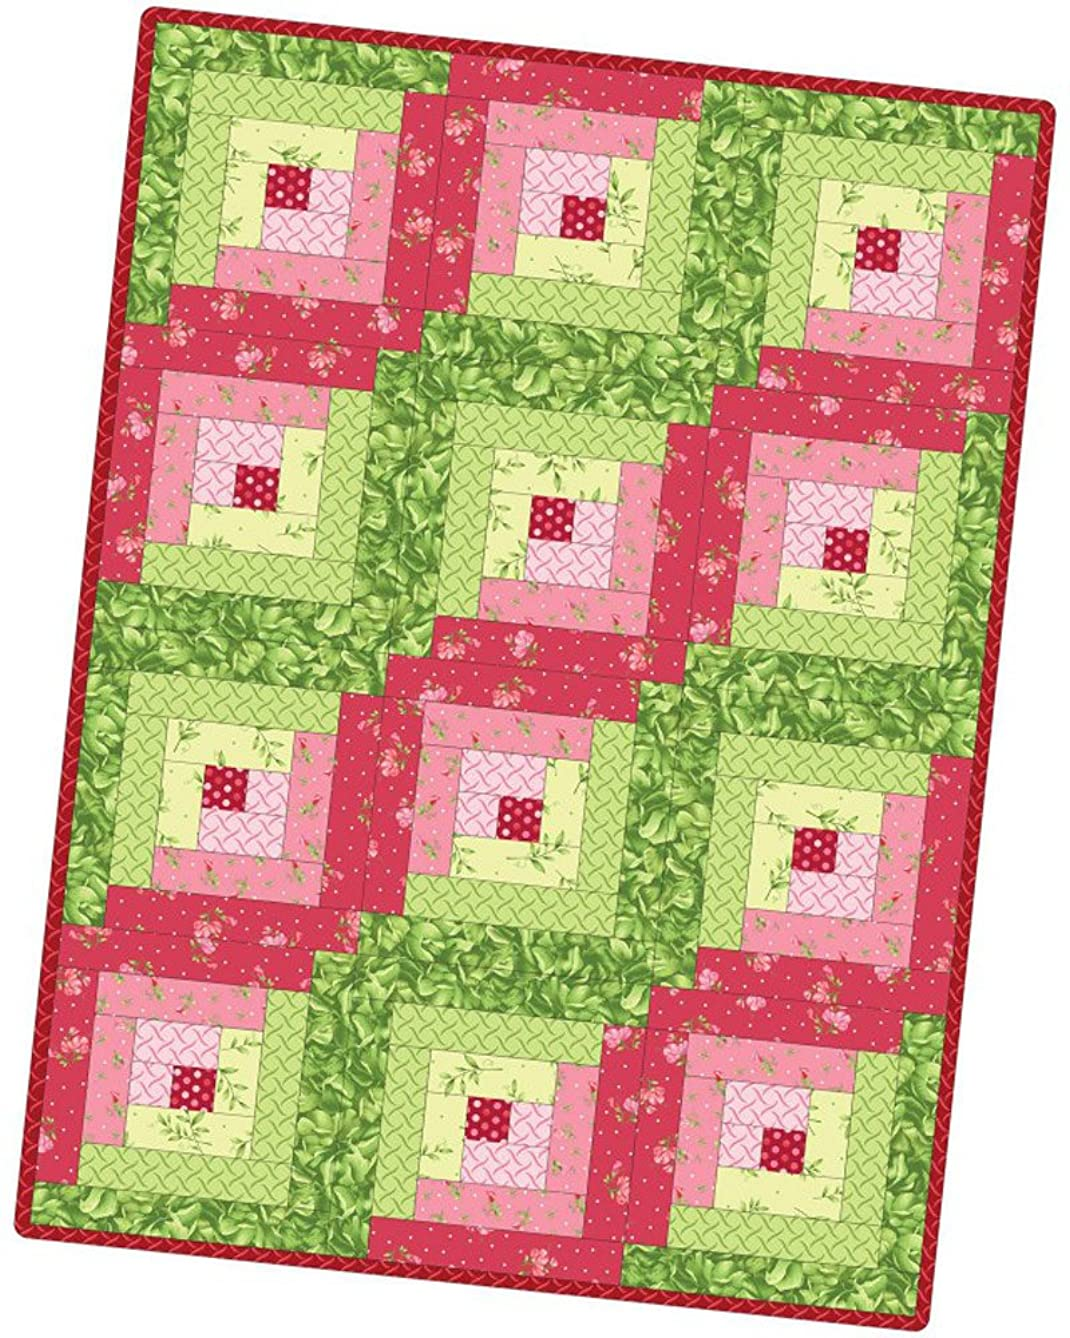 Sweet Pea Flannel Log Cabin Pod Quilt Kit Maywood Studio